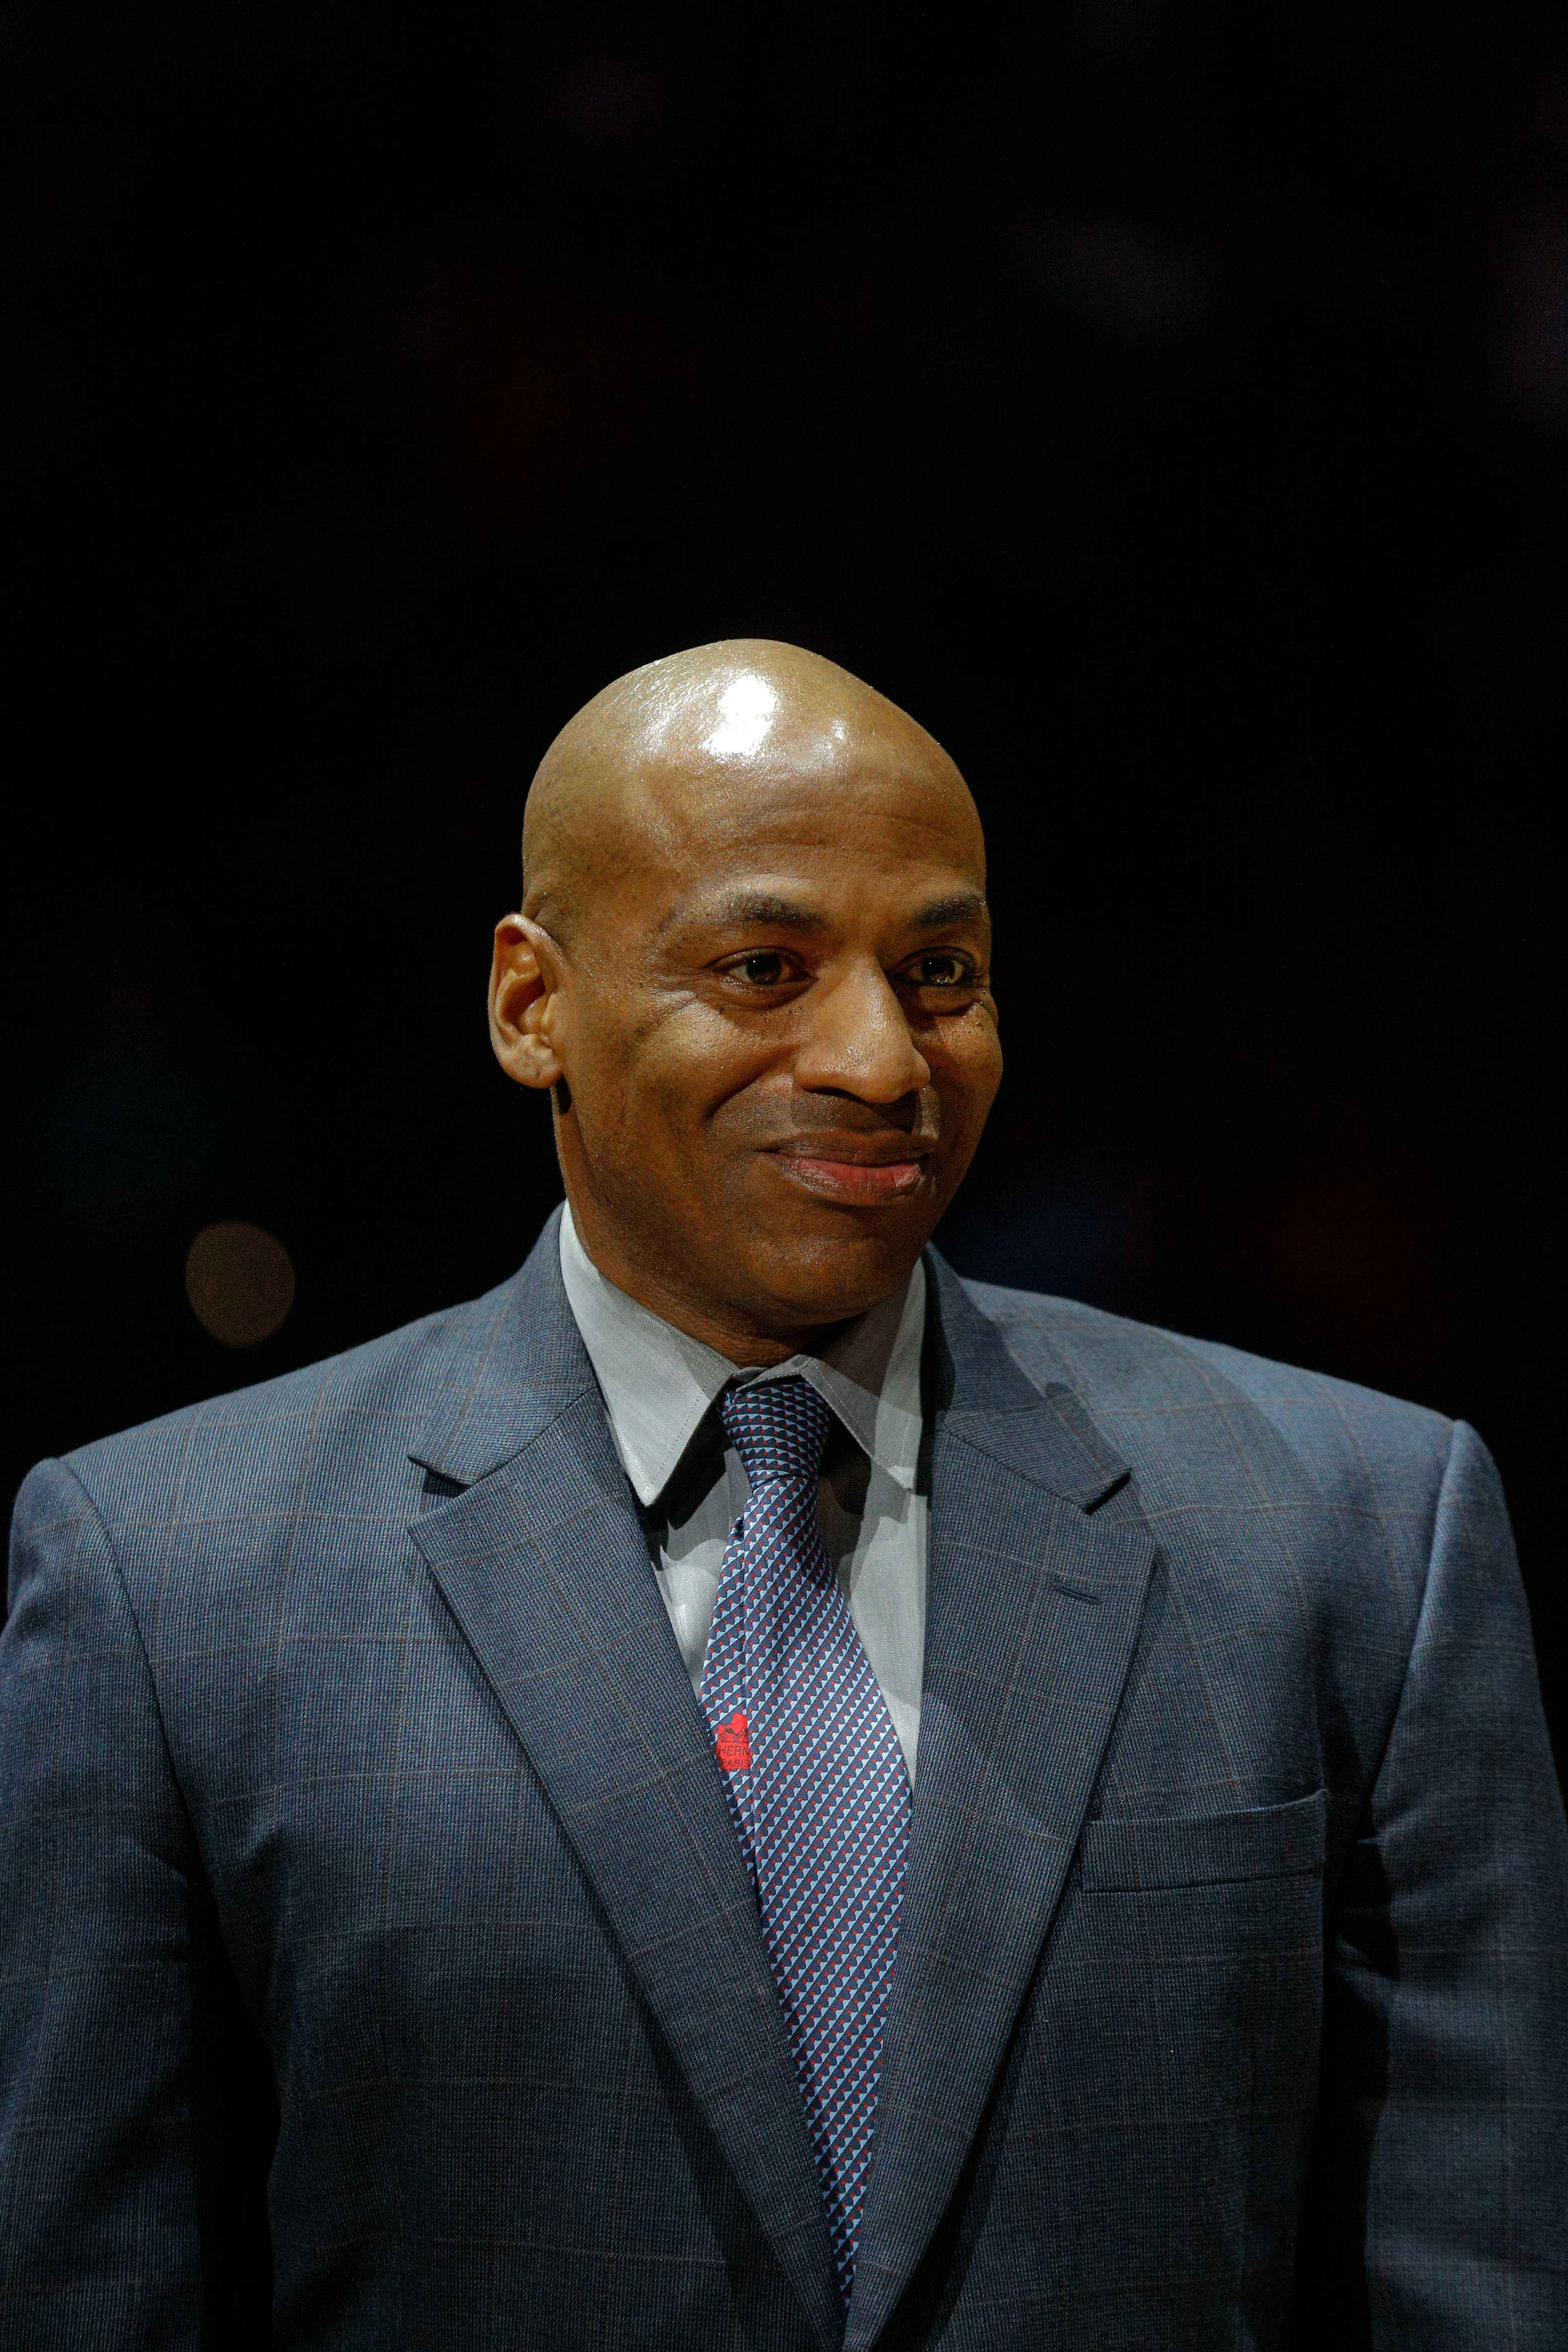 New Orleans Pelicans abruptly fire GM Dell Demps amid Anthony Davis drama, per report